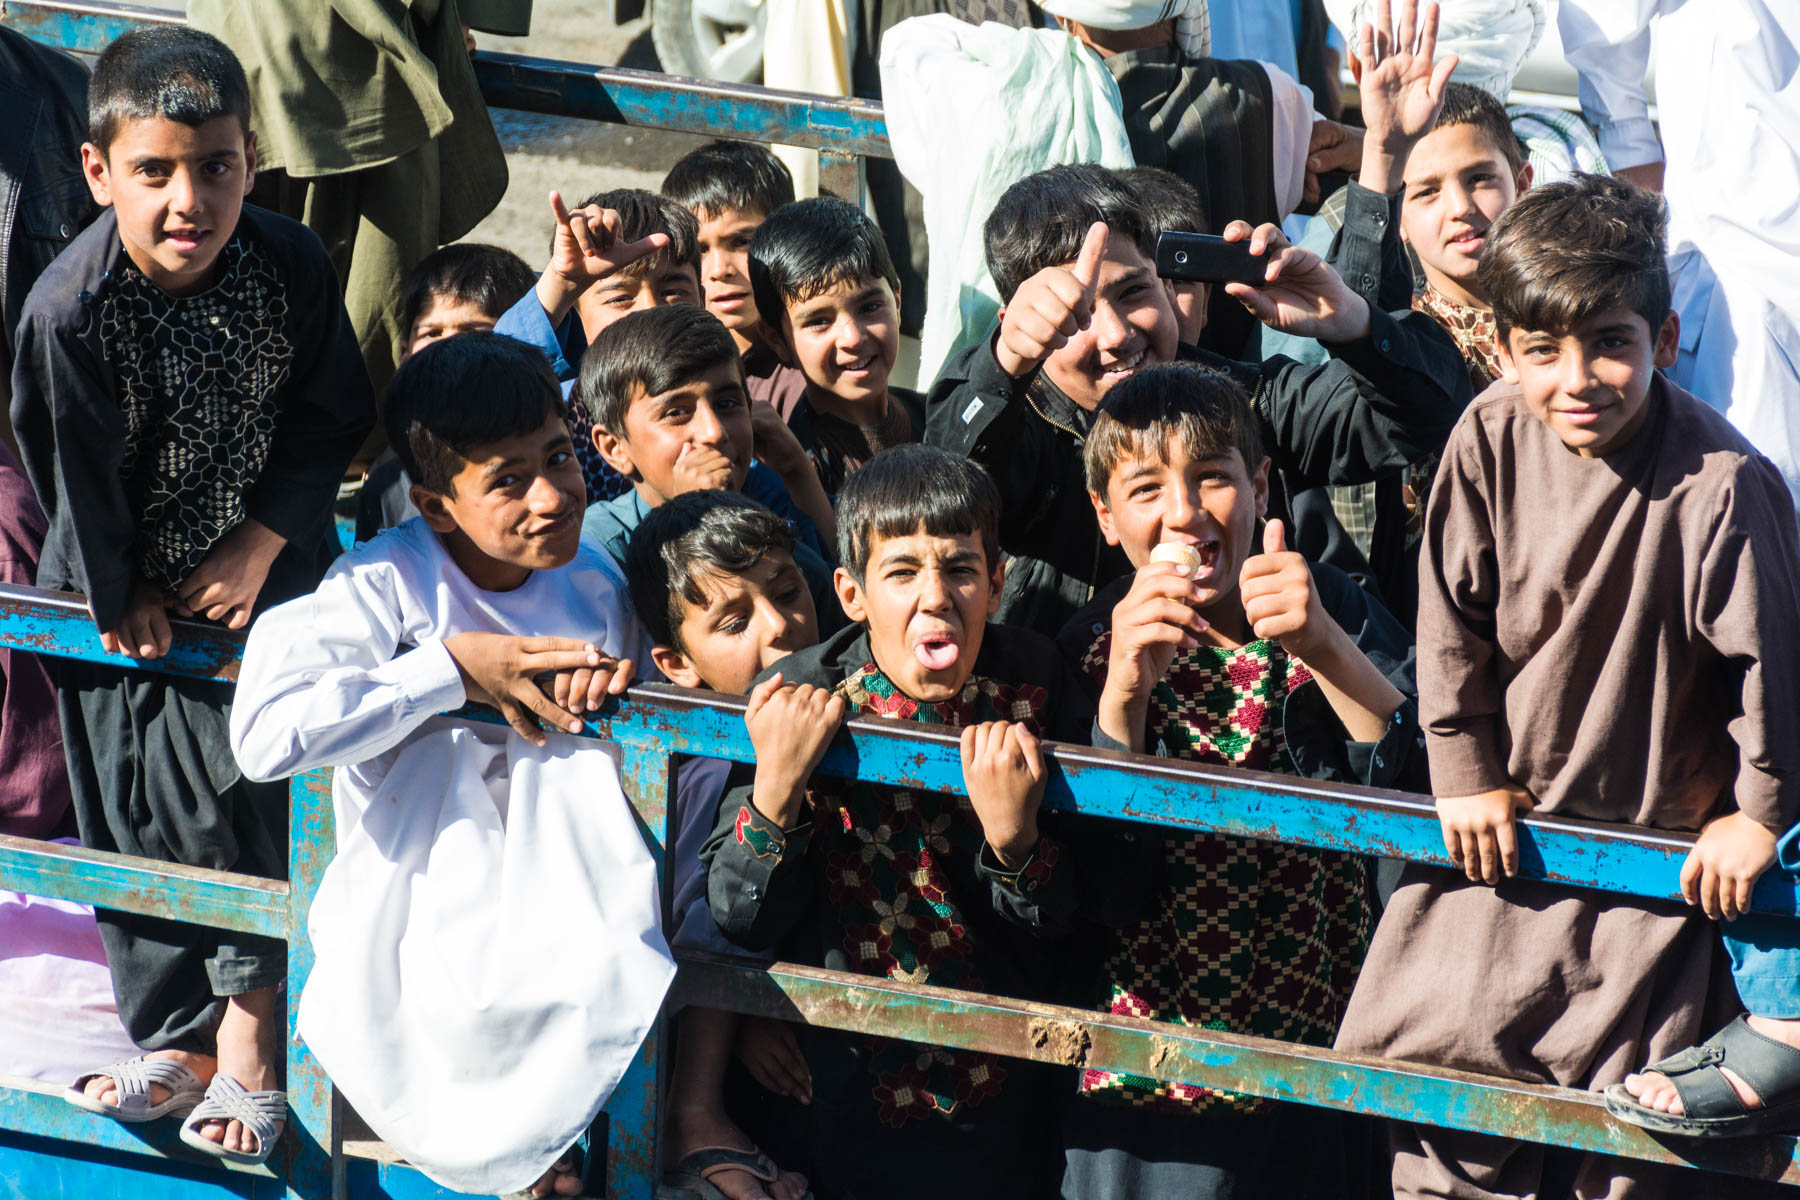 Playful Afghan boys in the back of a truck in Herat, Afghanistan - Lost With Purpose